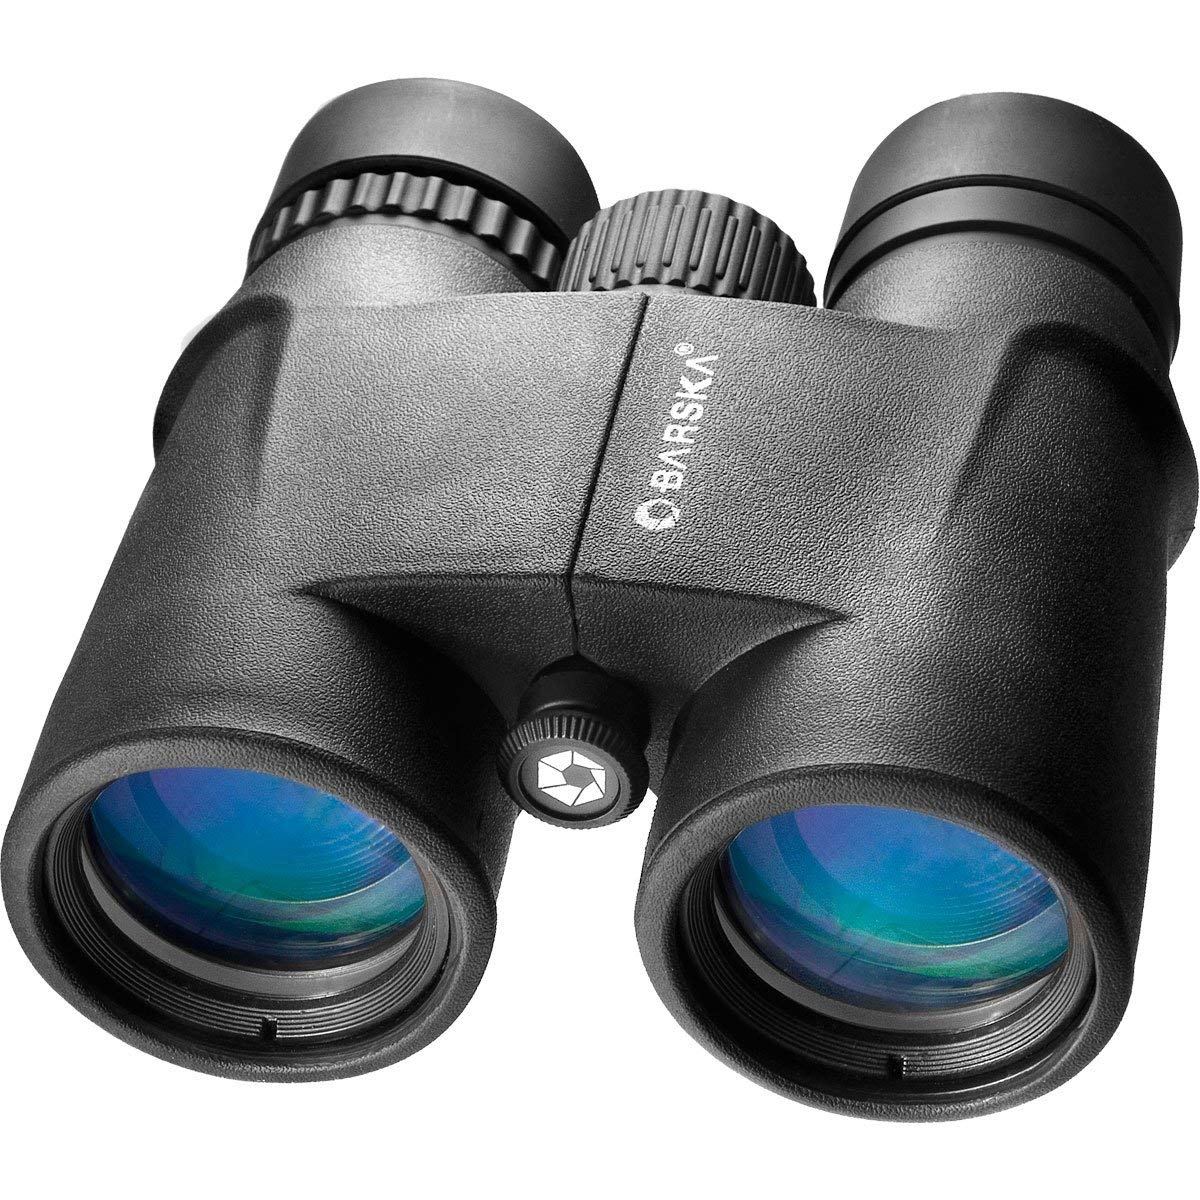 Energetic Opticron Binocular Rainguard Small Cameras & Photo up To 37mm